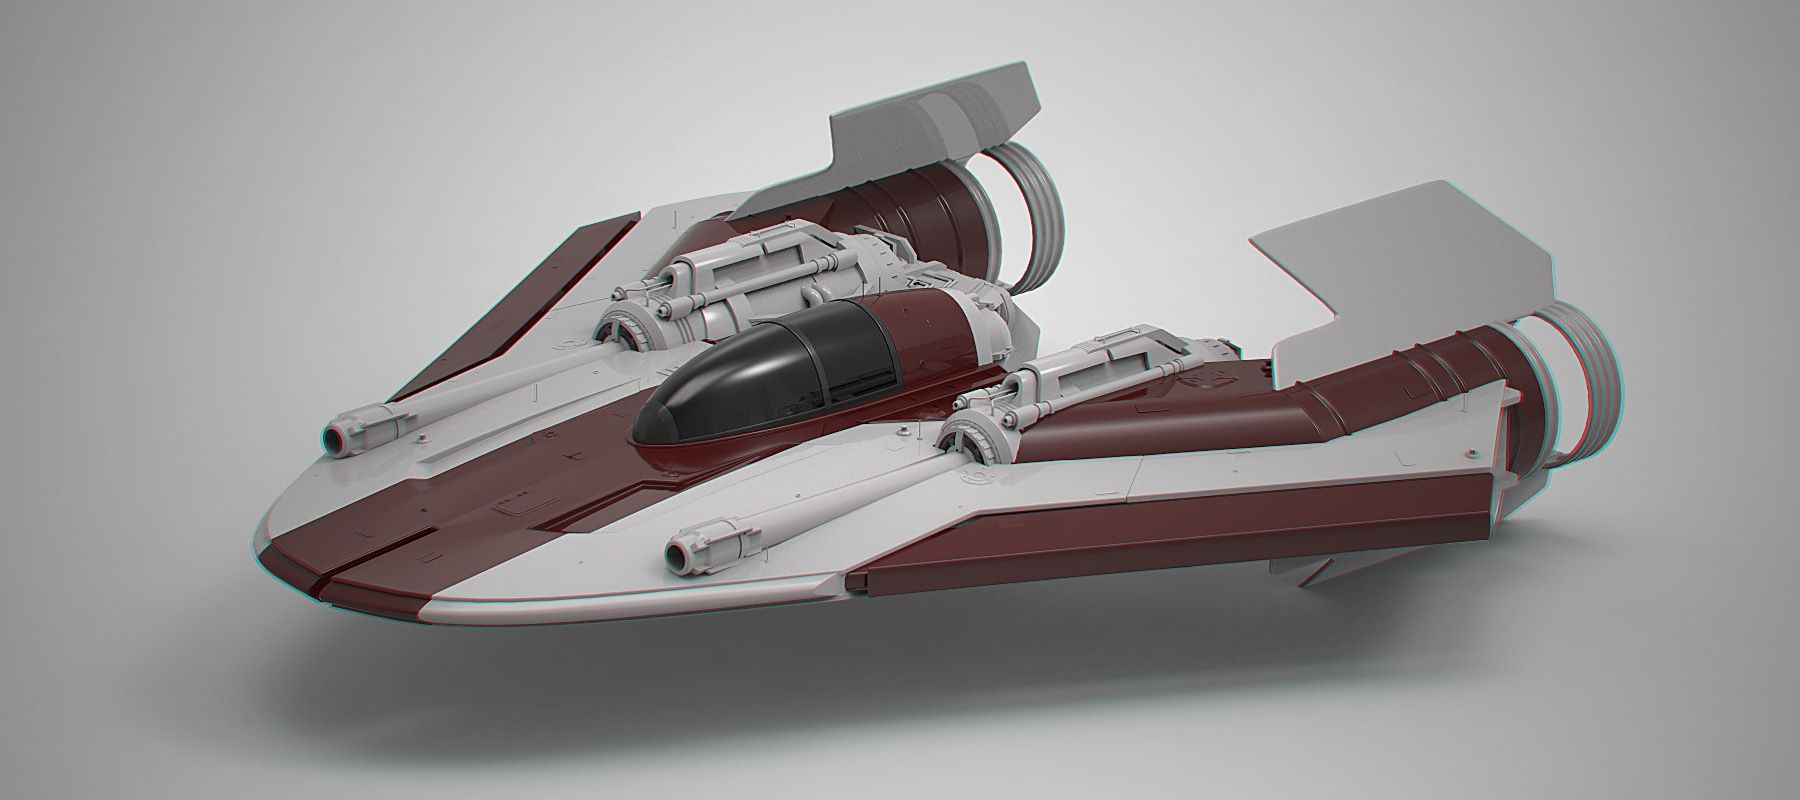 61df5f036 A-Wing redisign by Andrew Hodgson. Keywords: star wars concept a-wing  redesign plane ship spaceship craft model technical art ill.